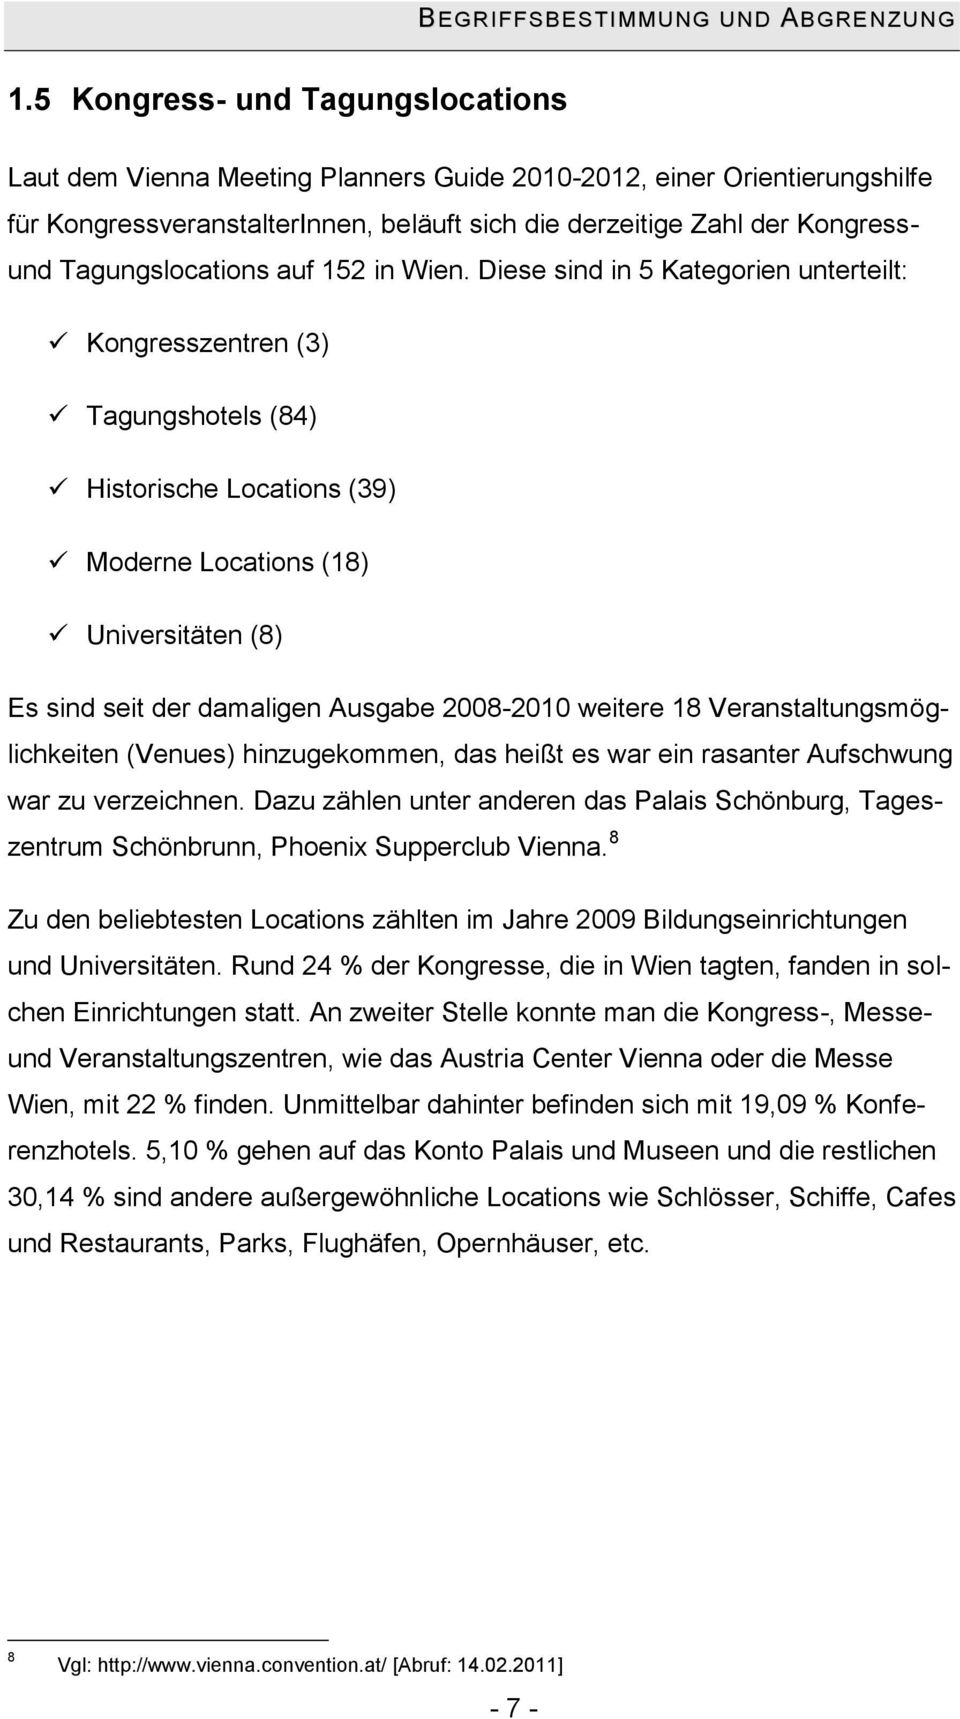 Tagungslocations auf 152 in Wien.